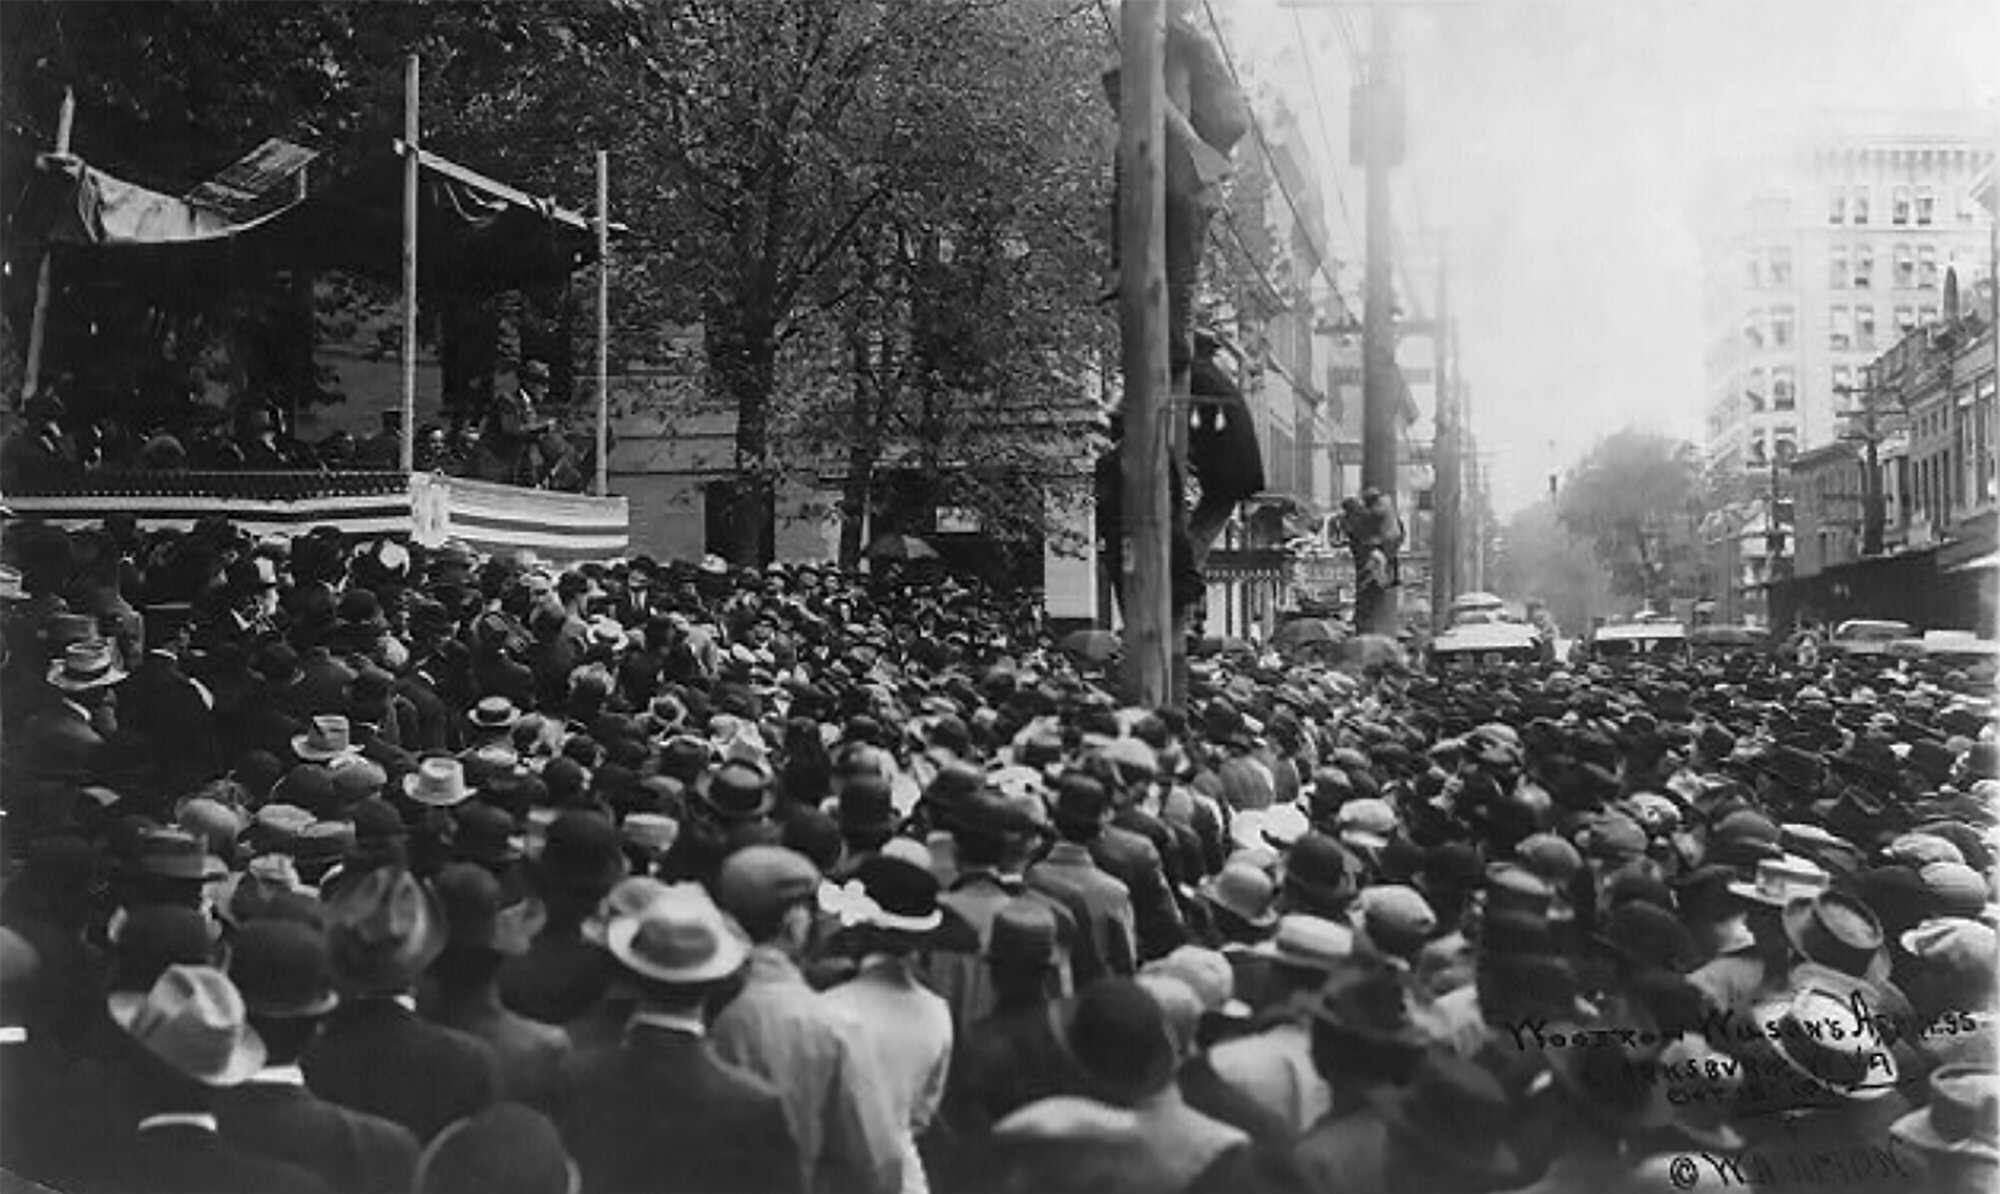 Wilson-election-Speaking-to-crowd,-W.-VA.1912.jpg